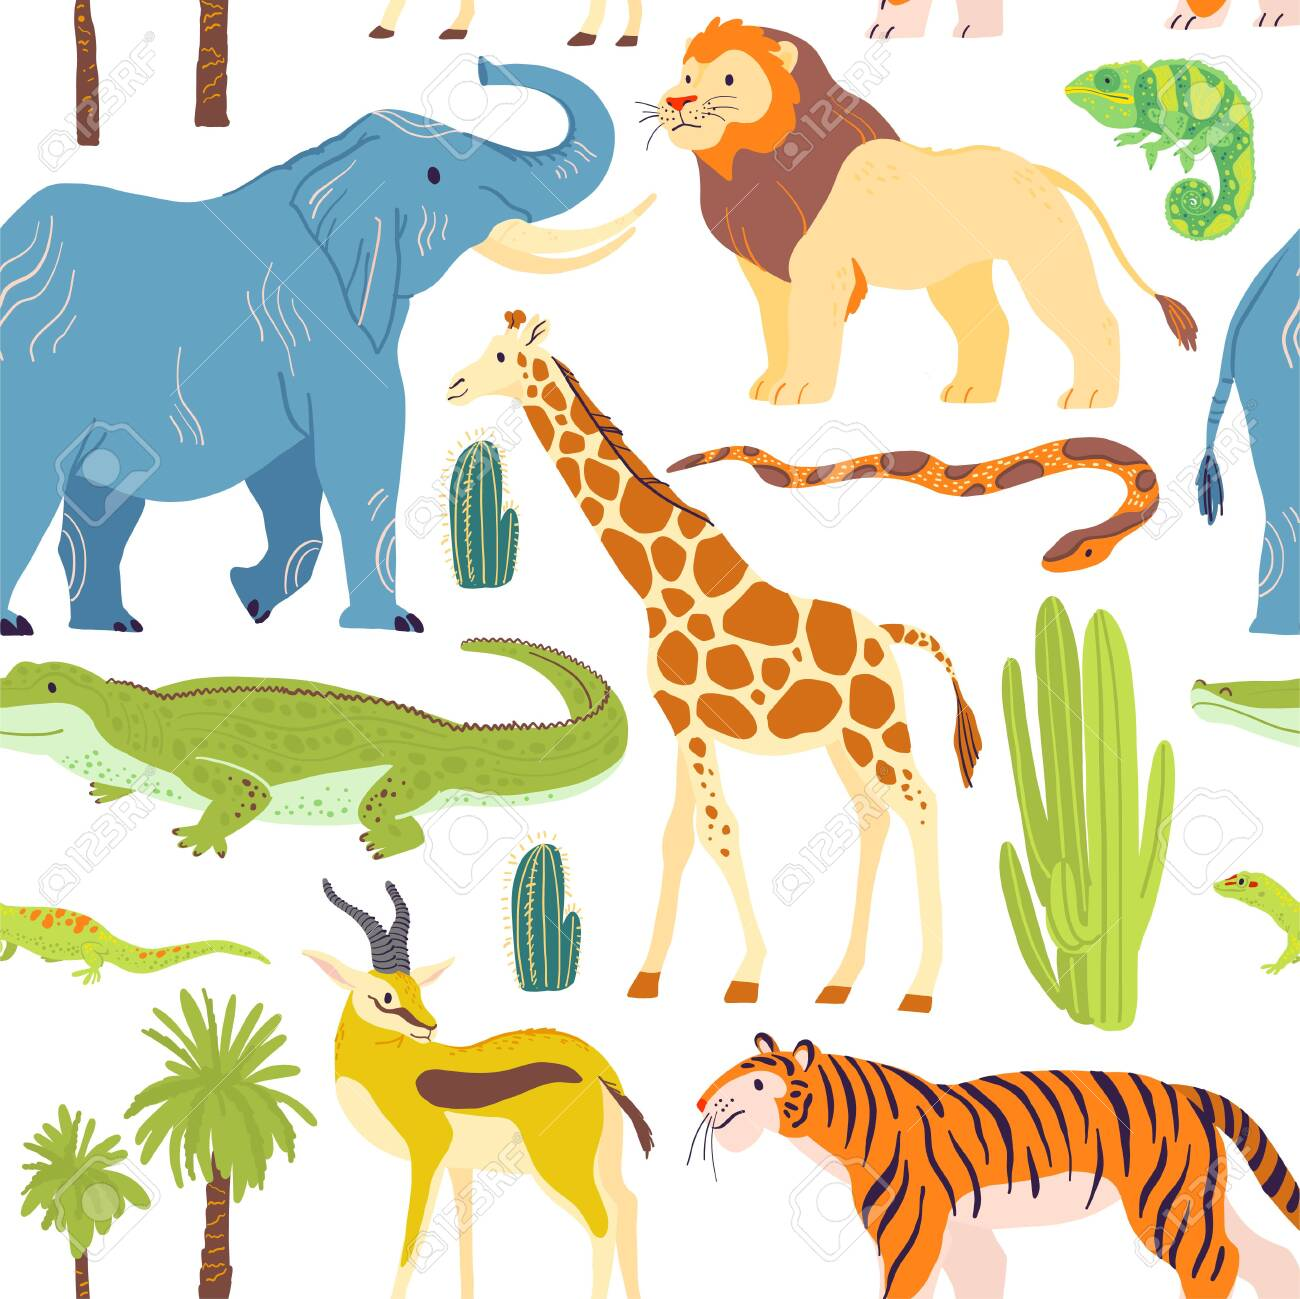 Vector flat seamless pattern with hand drawn desert animals, reptiles, palm trees, cactus isolated on white background. - 123851240